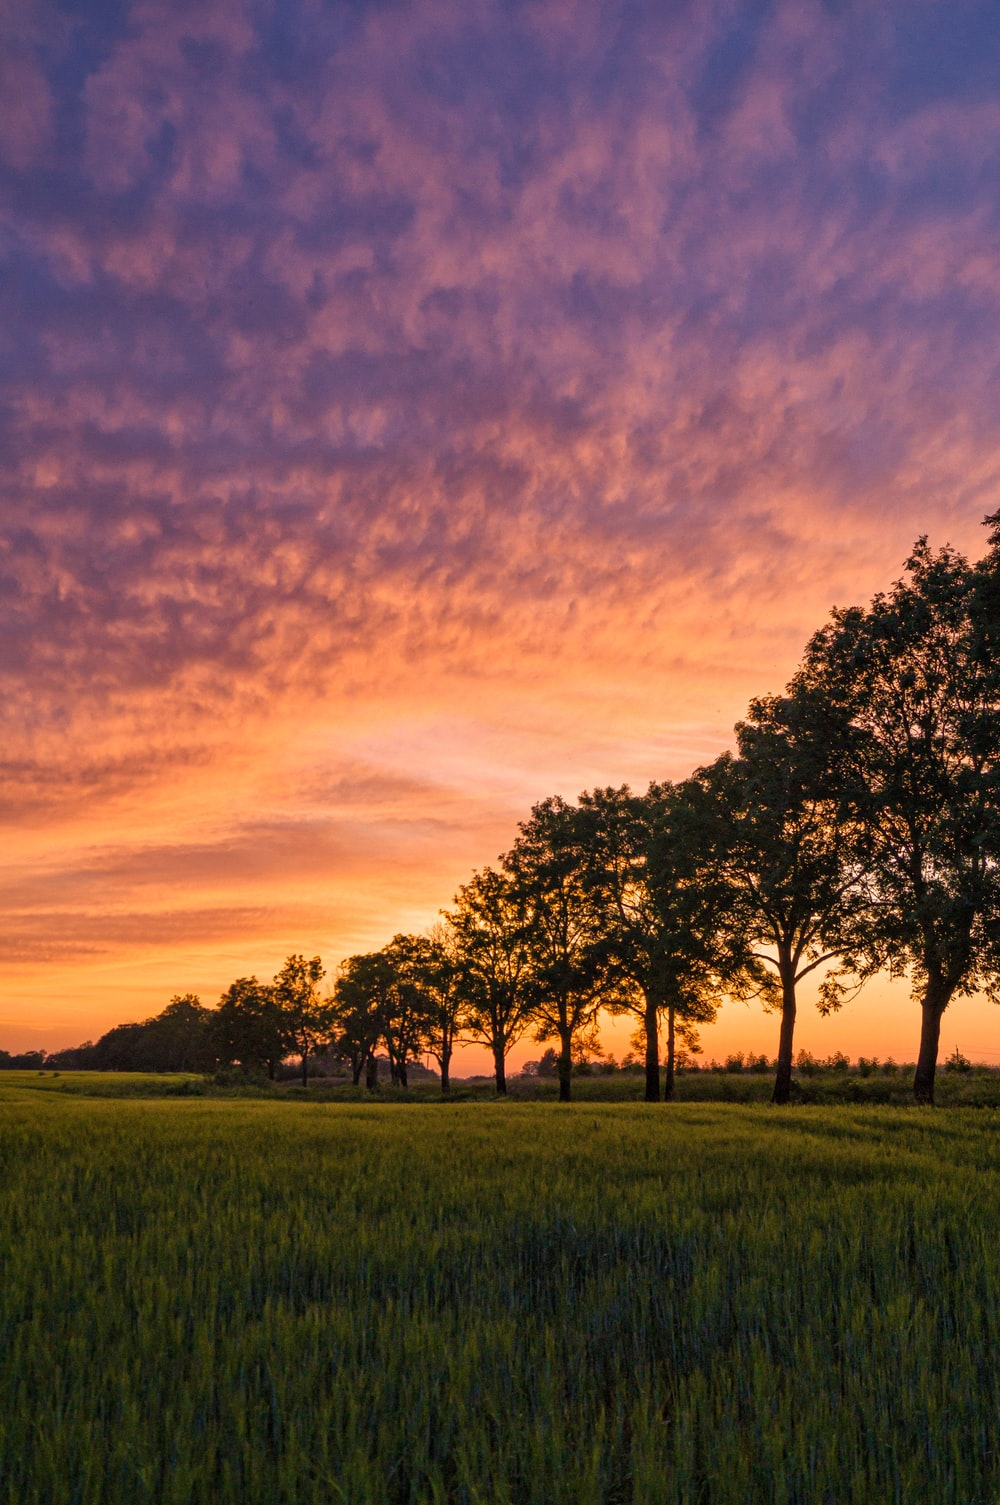 green trees on green grass field during sunset